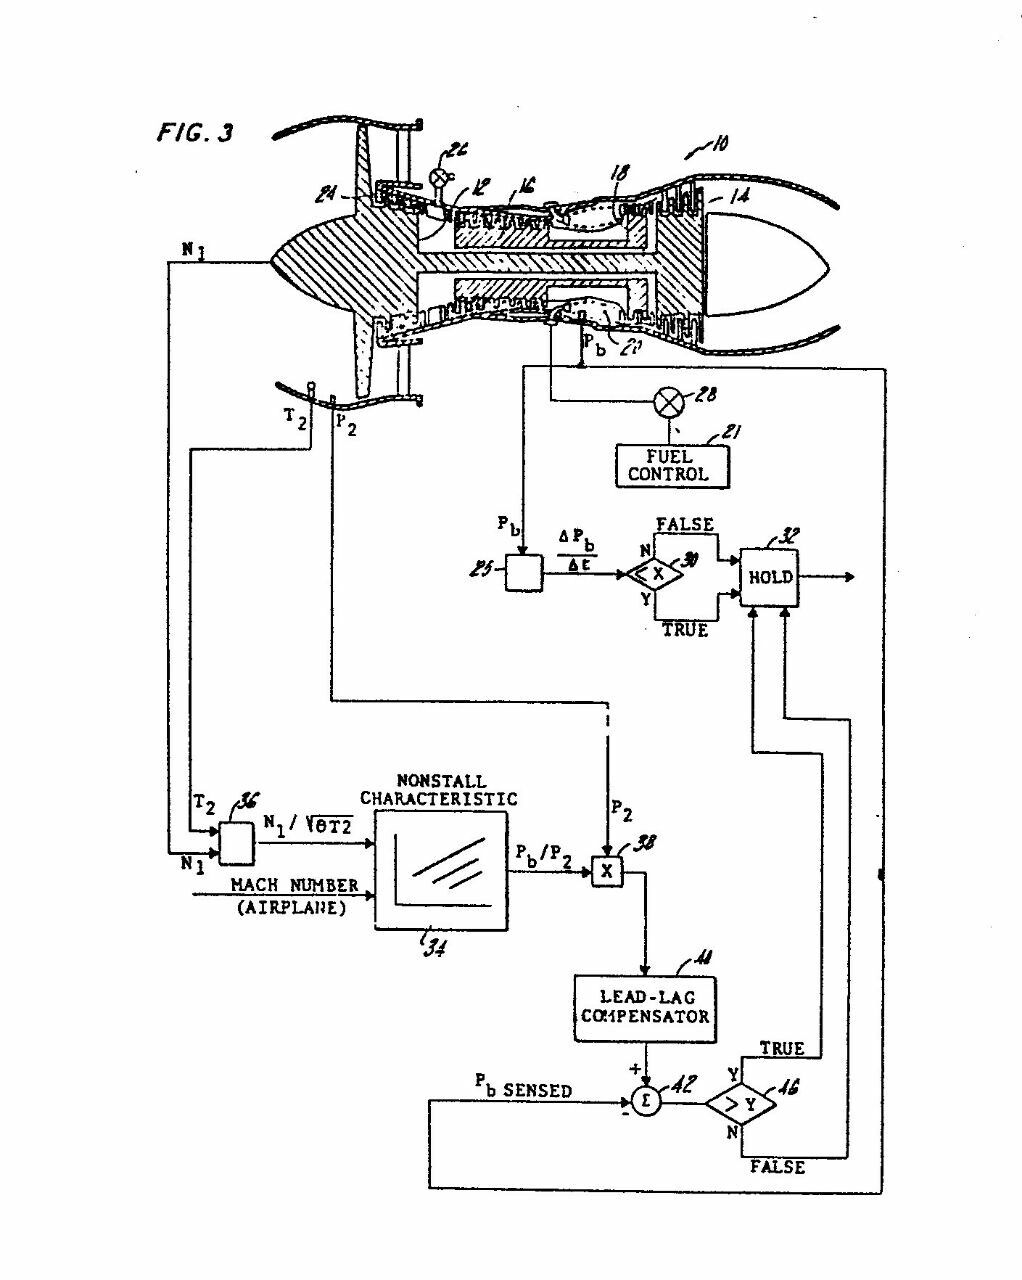 Schematic drawing for the woodward gas turbine main engine control for the cfm 56 2a series jet engine schematic drawings pinterest gas turbine